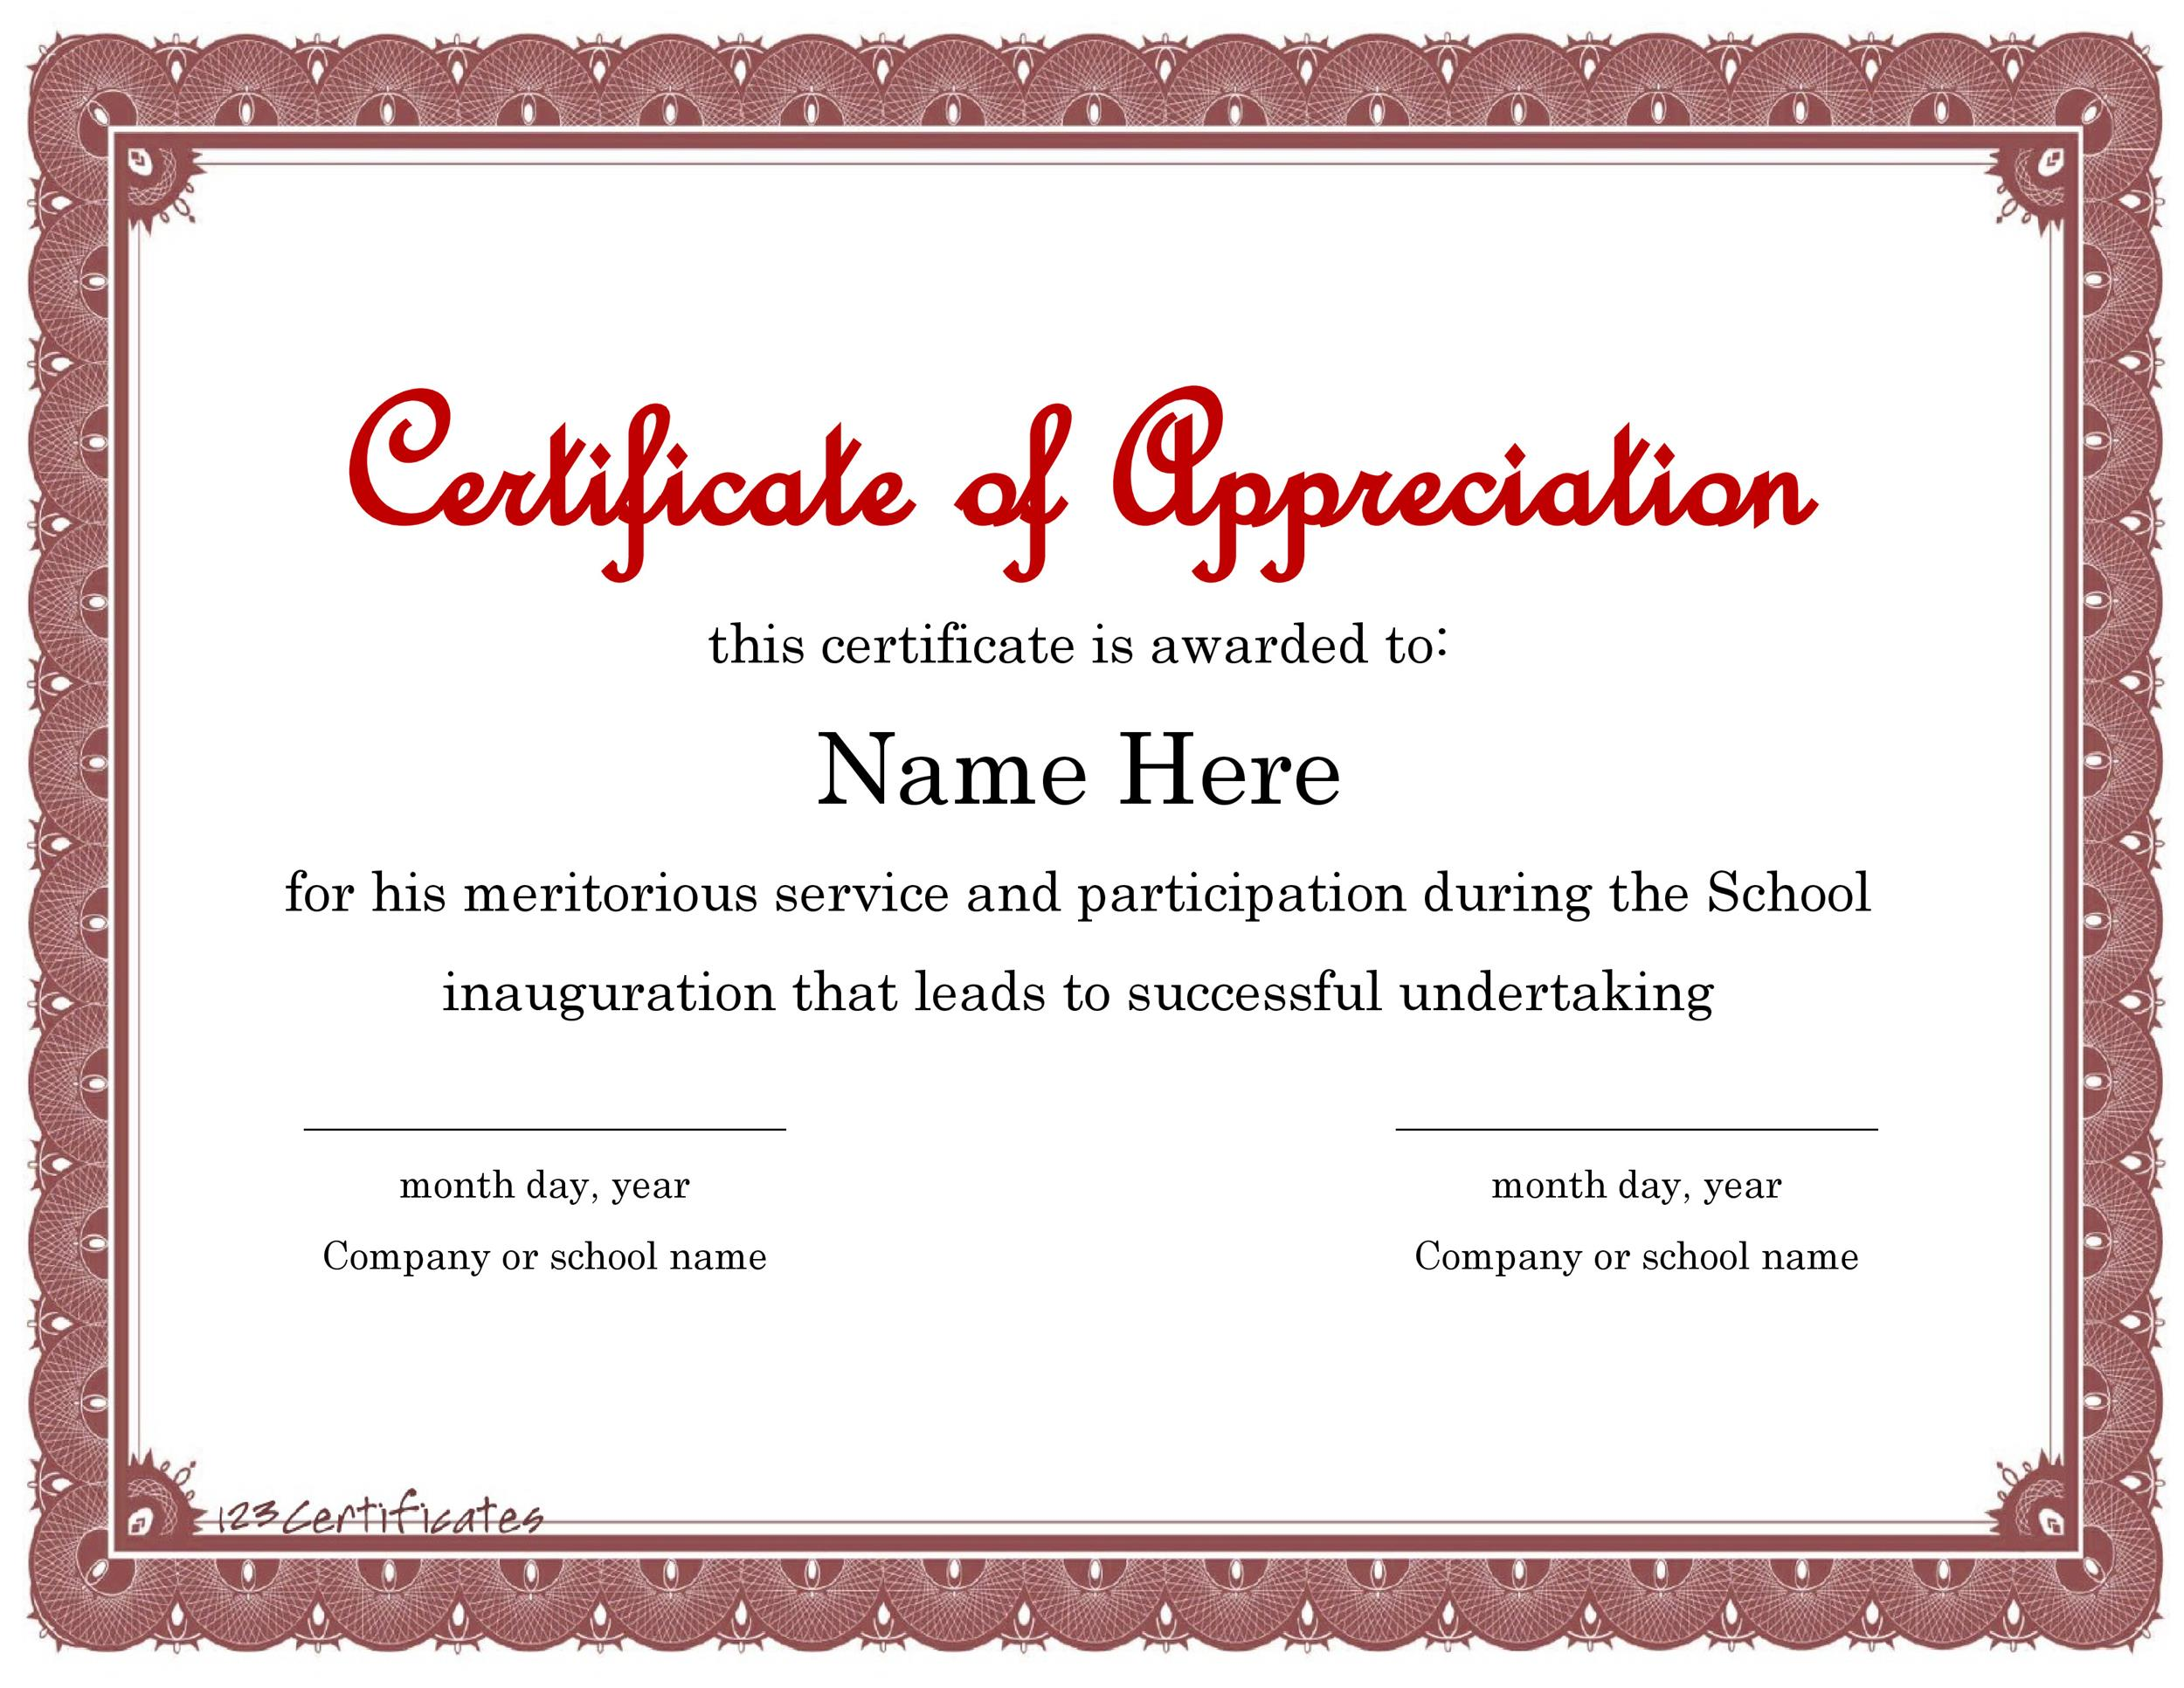 principals list certificate template - 30 free certificate of appreciation templates and letters